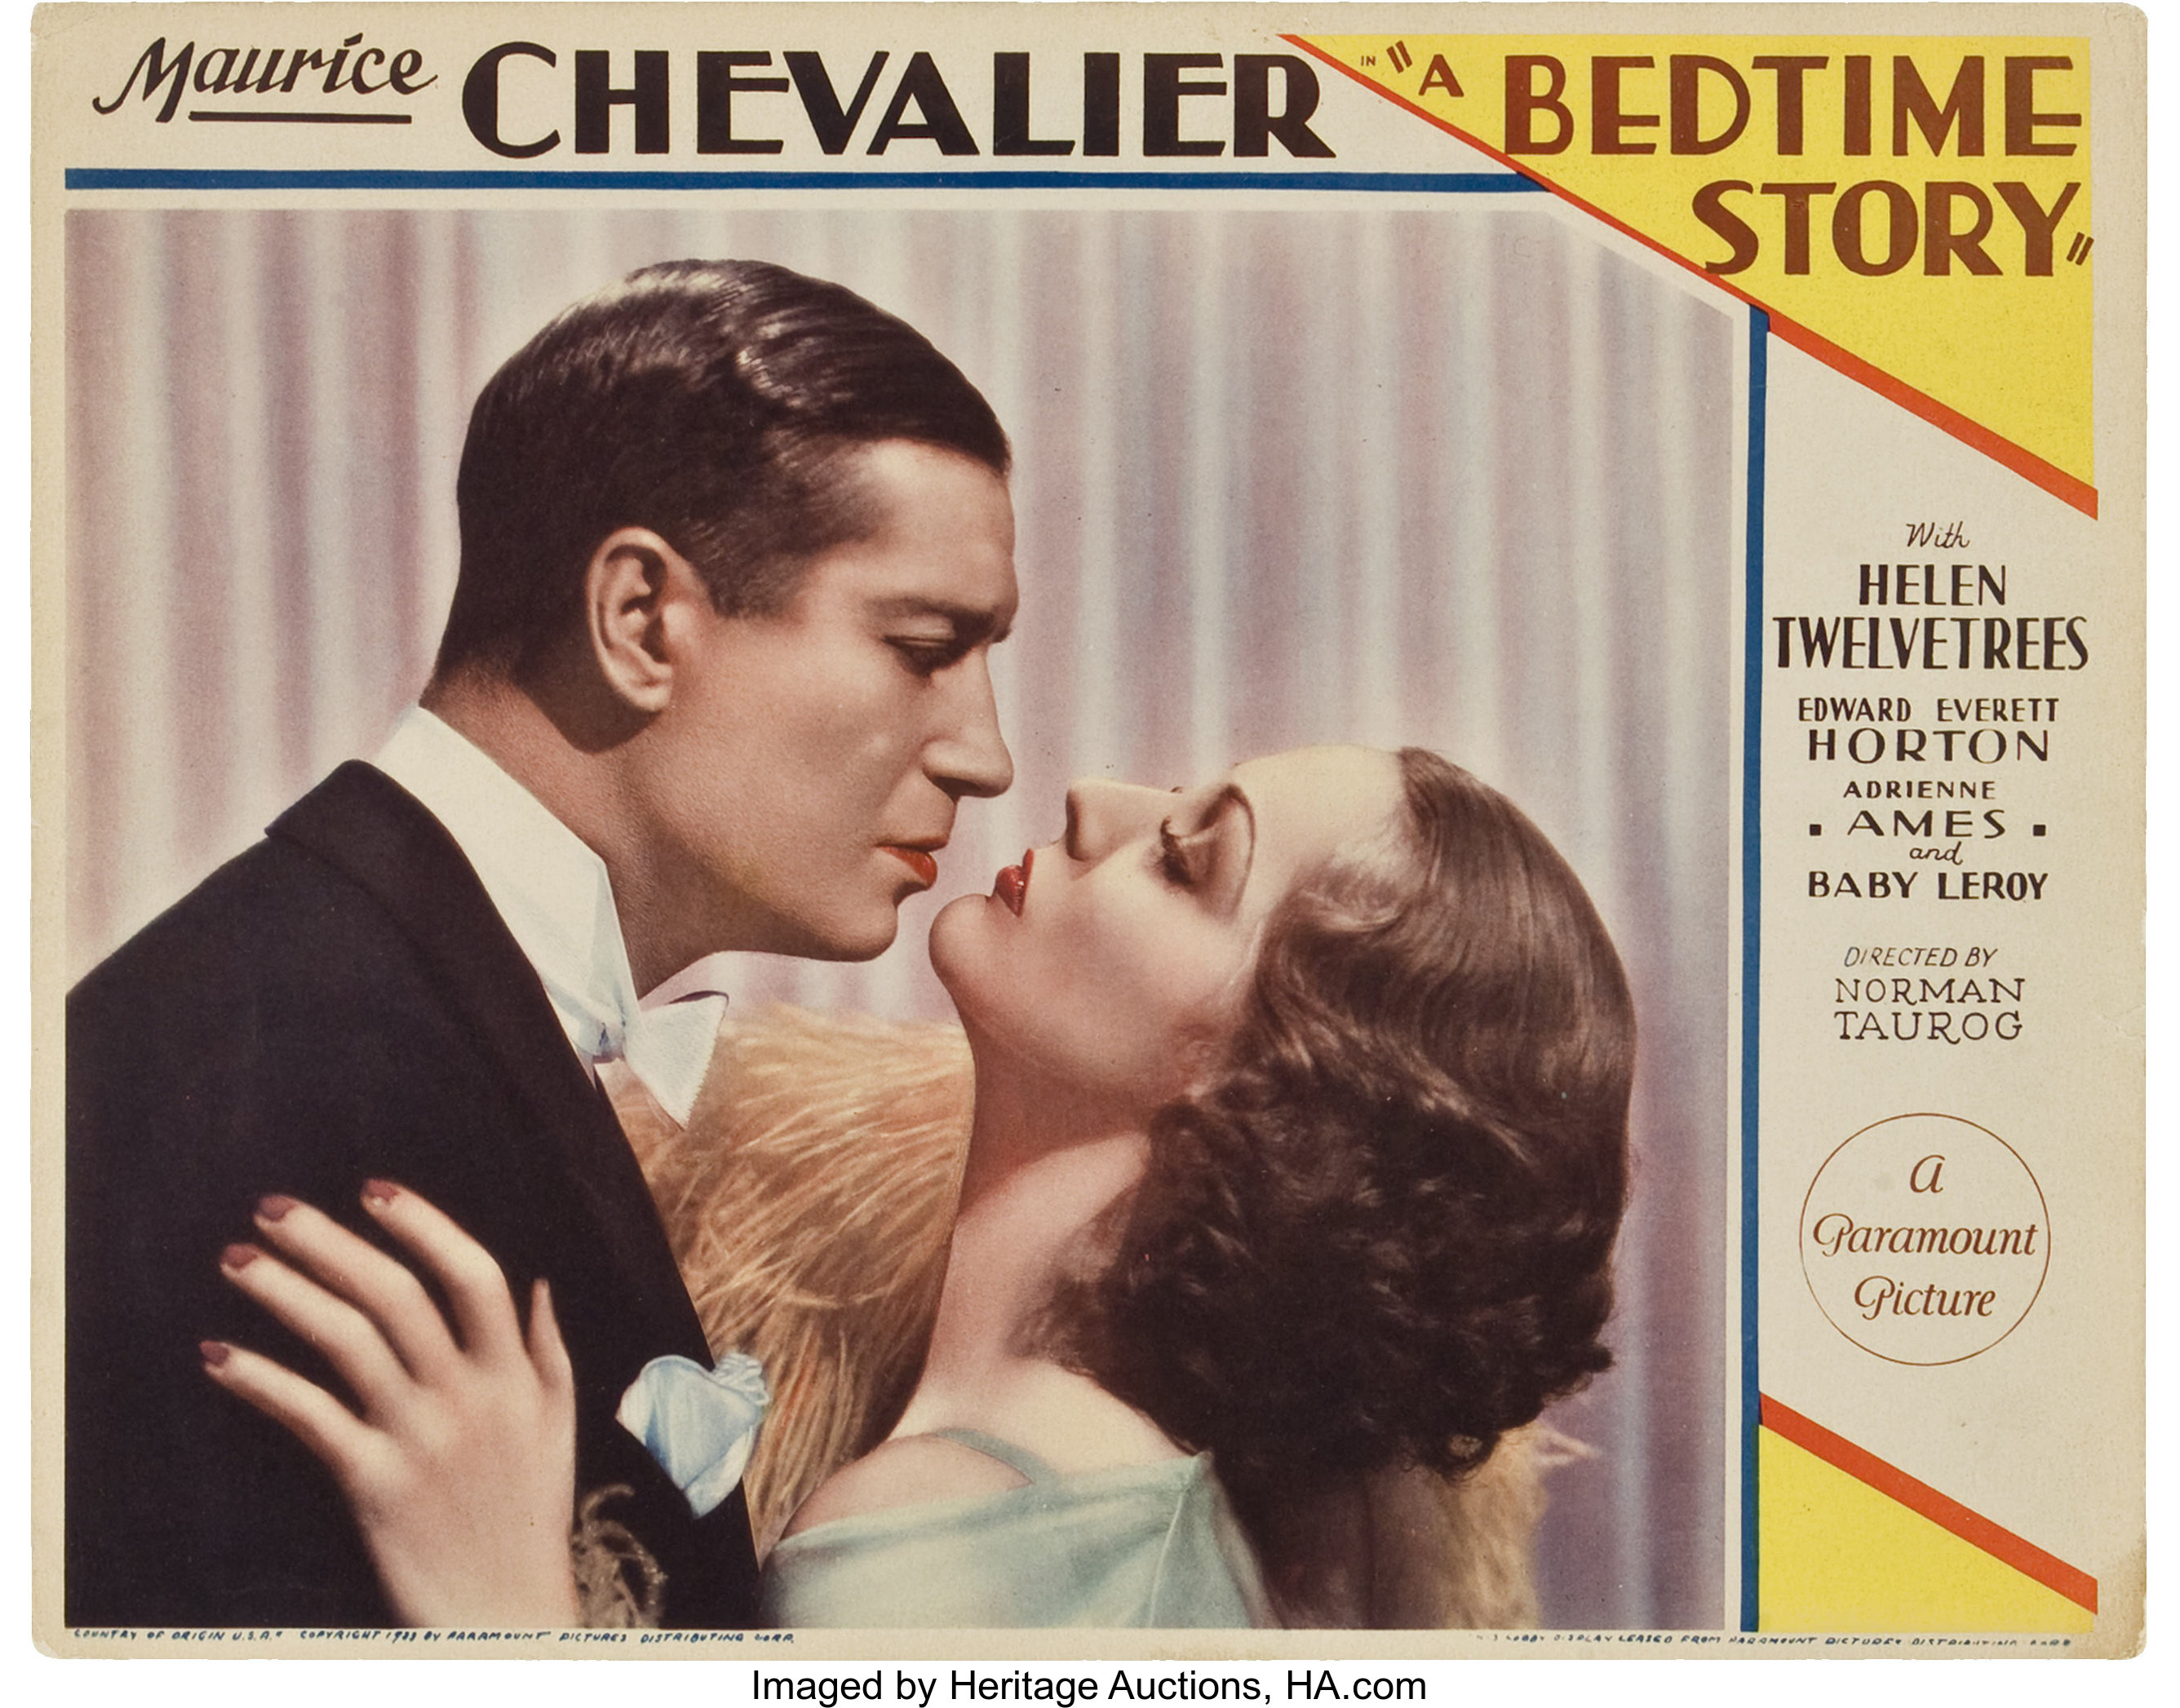 A bed time story Maurice Chevalier movie poster